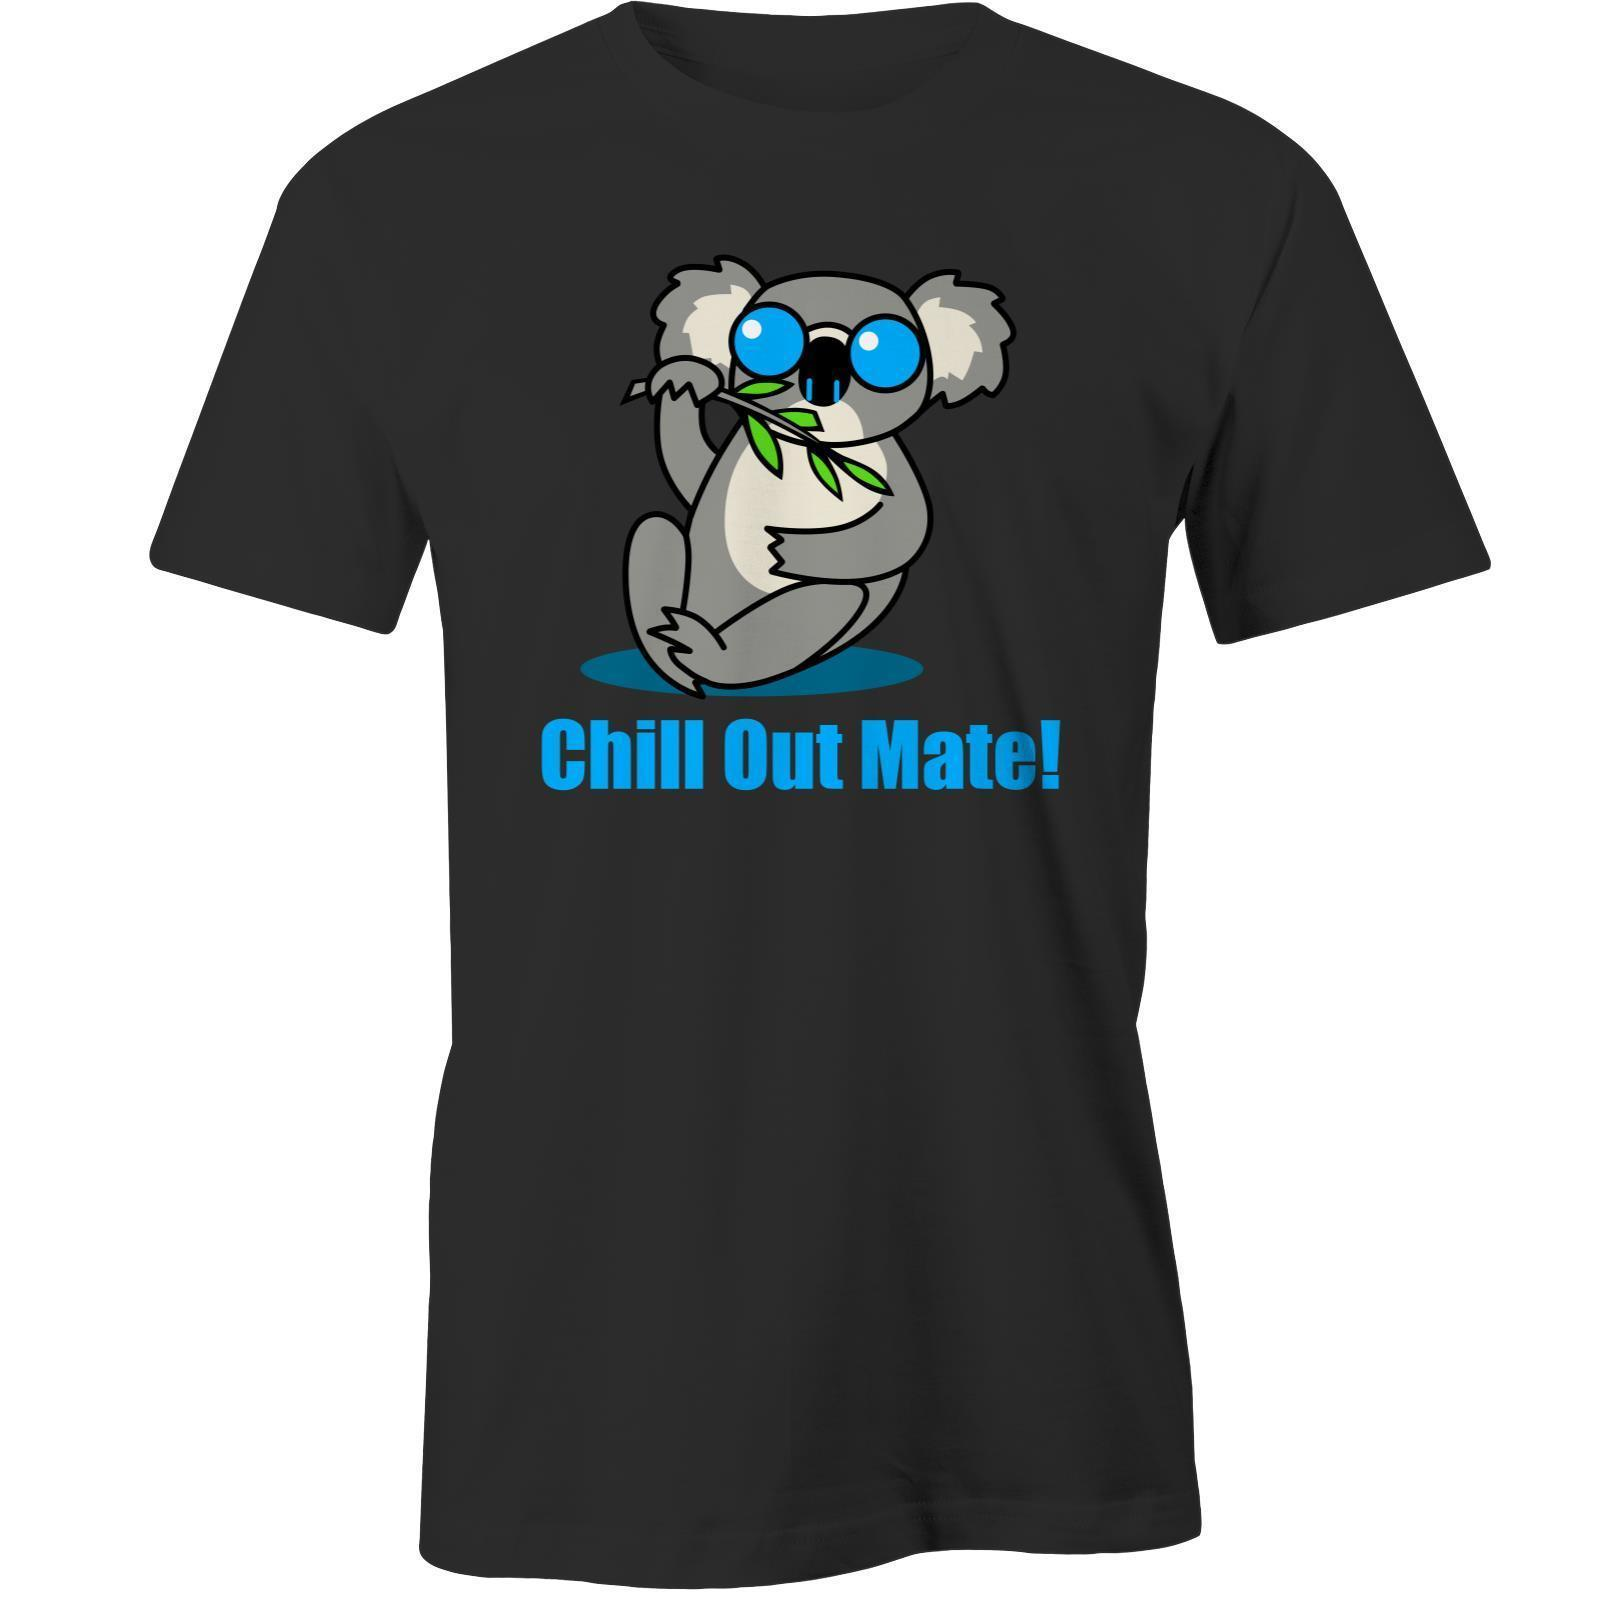 038a0a6af15880 Chill Out Mate Koala T Shirt Australia Day Aussie Australian Downunder T  Shirts Online White Shirt From Moonprinted, $11.01| DHgate.Com